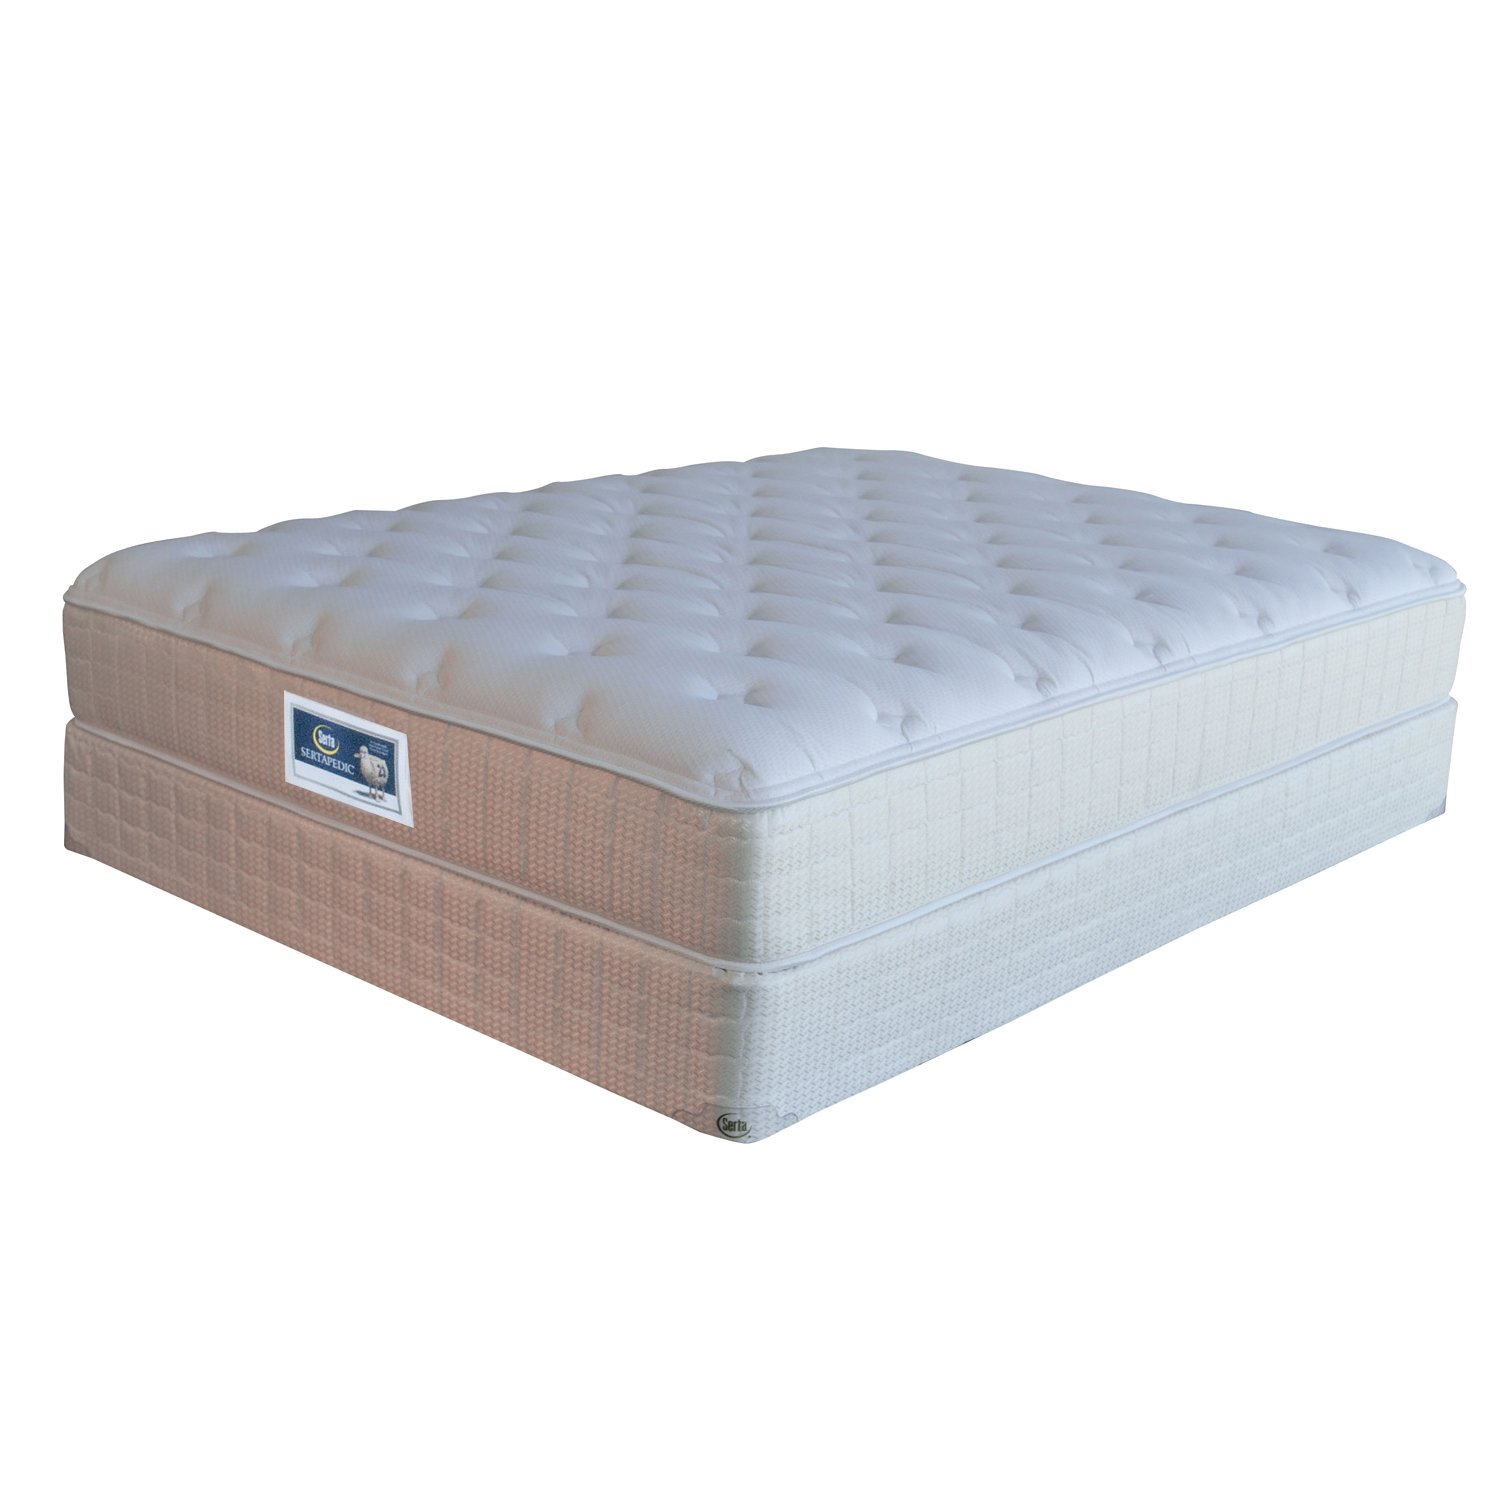 Sertapedic Willow Crest Firm Mattress Reviews GoodBed